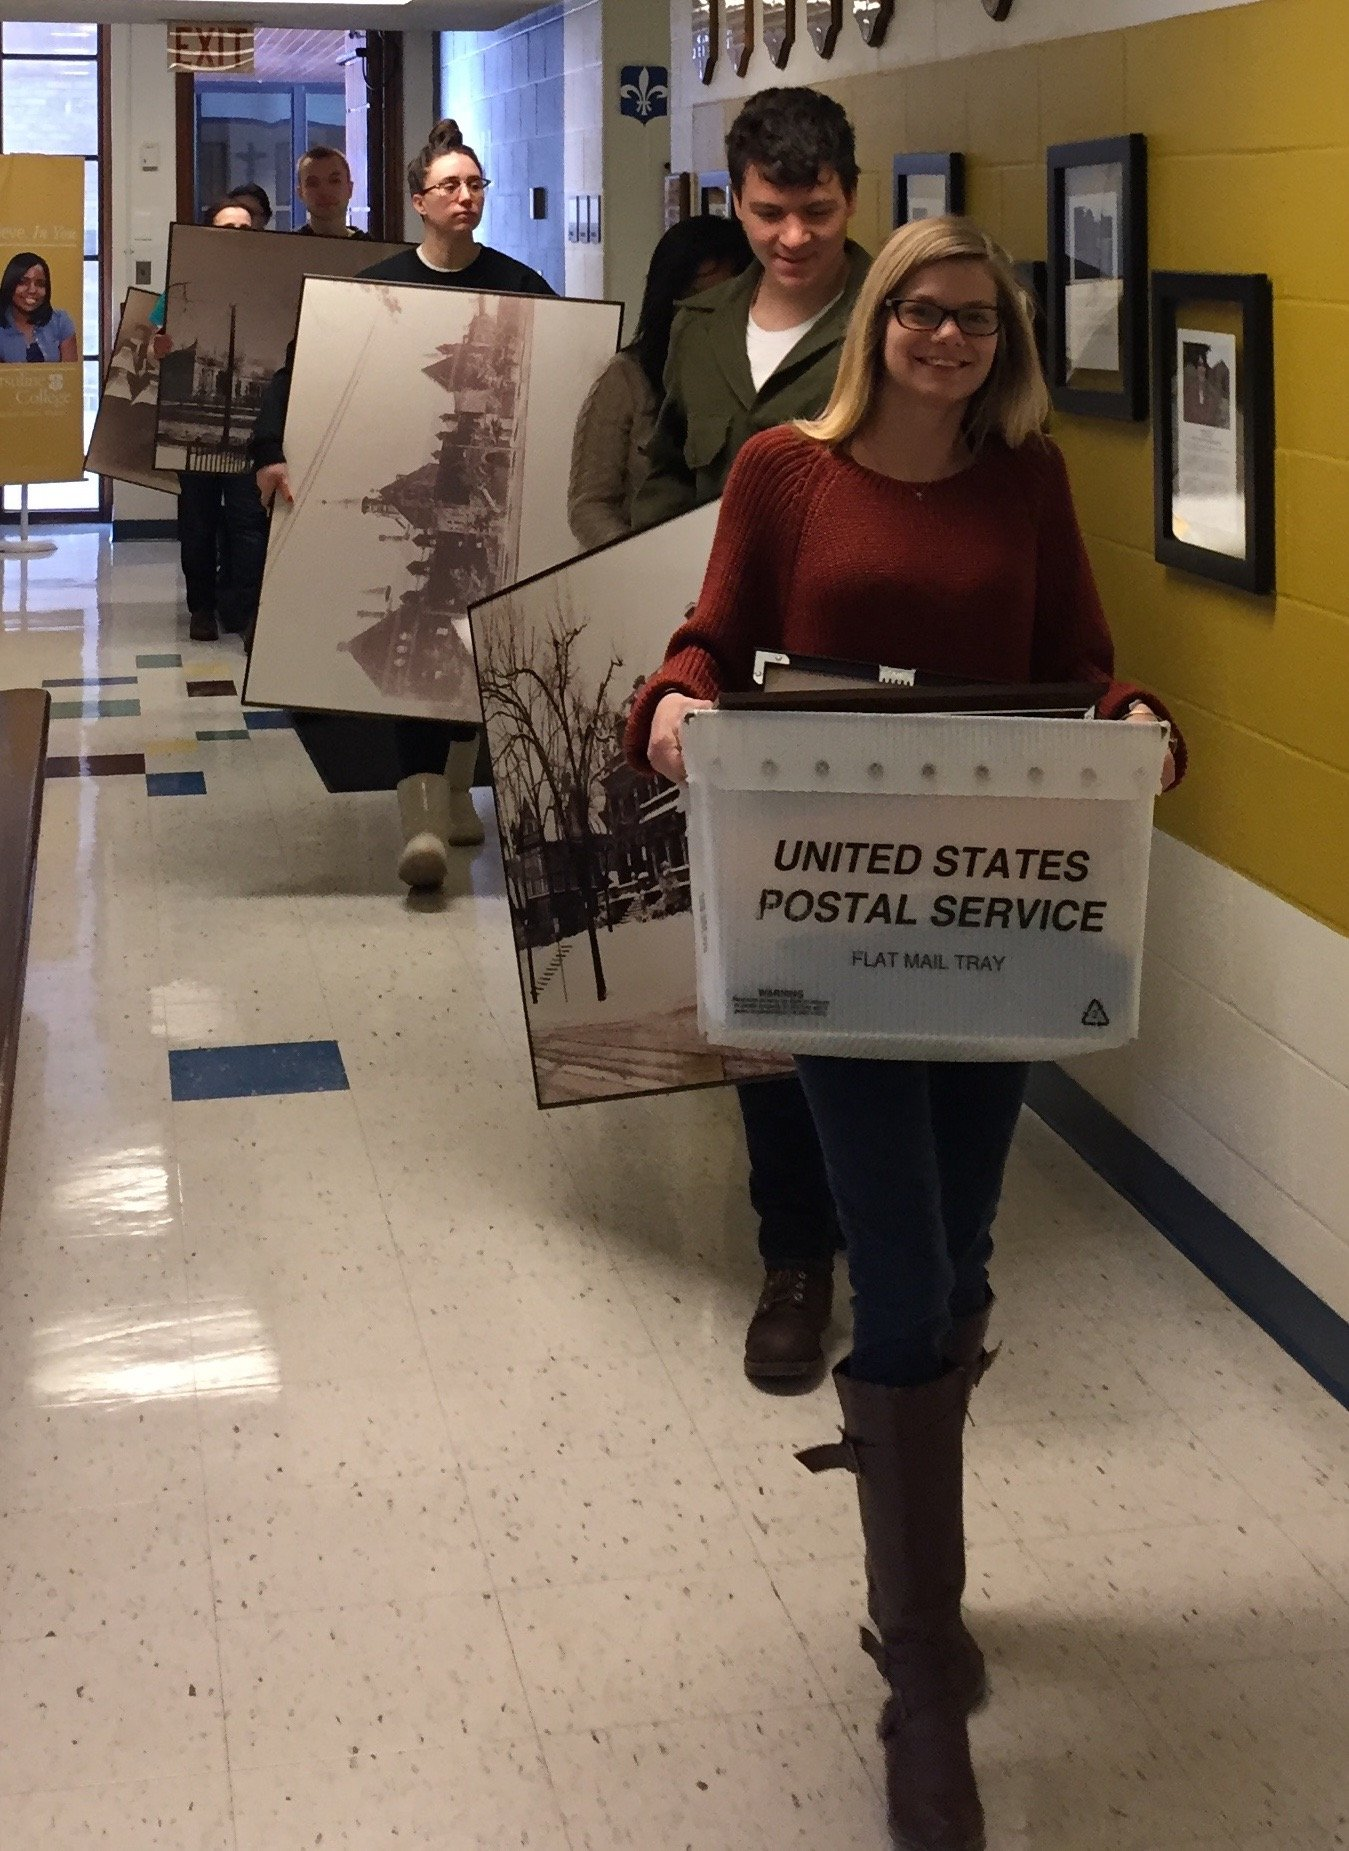 Students from the Designing Ursuline exhibit team gather already framed photographic prints from various departments around Ursuline College for display at the anniversary exhibit in Wasmer Art Gallery, Ursuline College, Spring 2017.